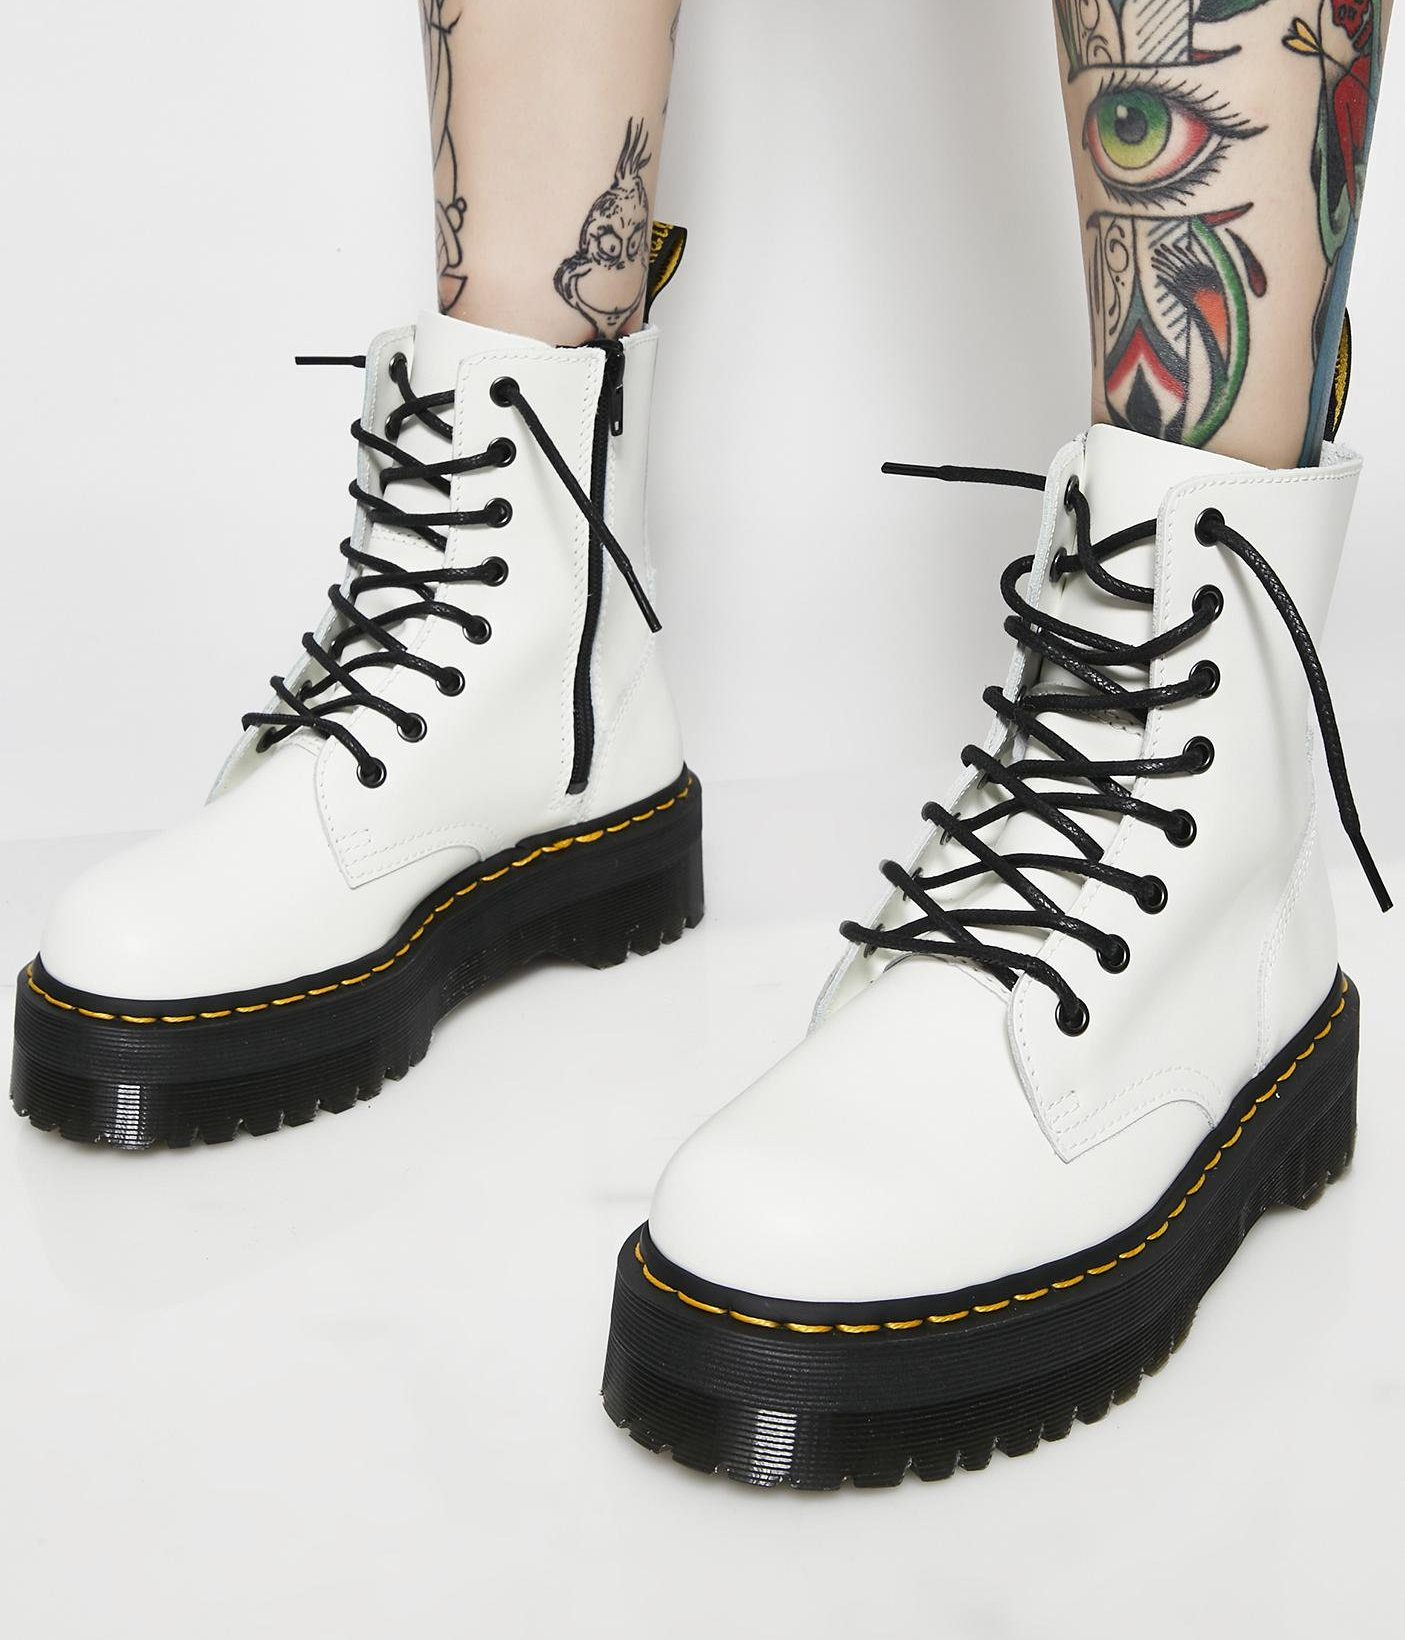 0b9252061b7 Dr. Martens White Boots - Women of Edm